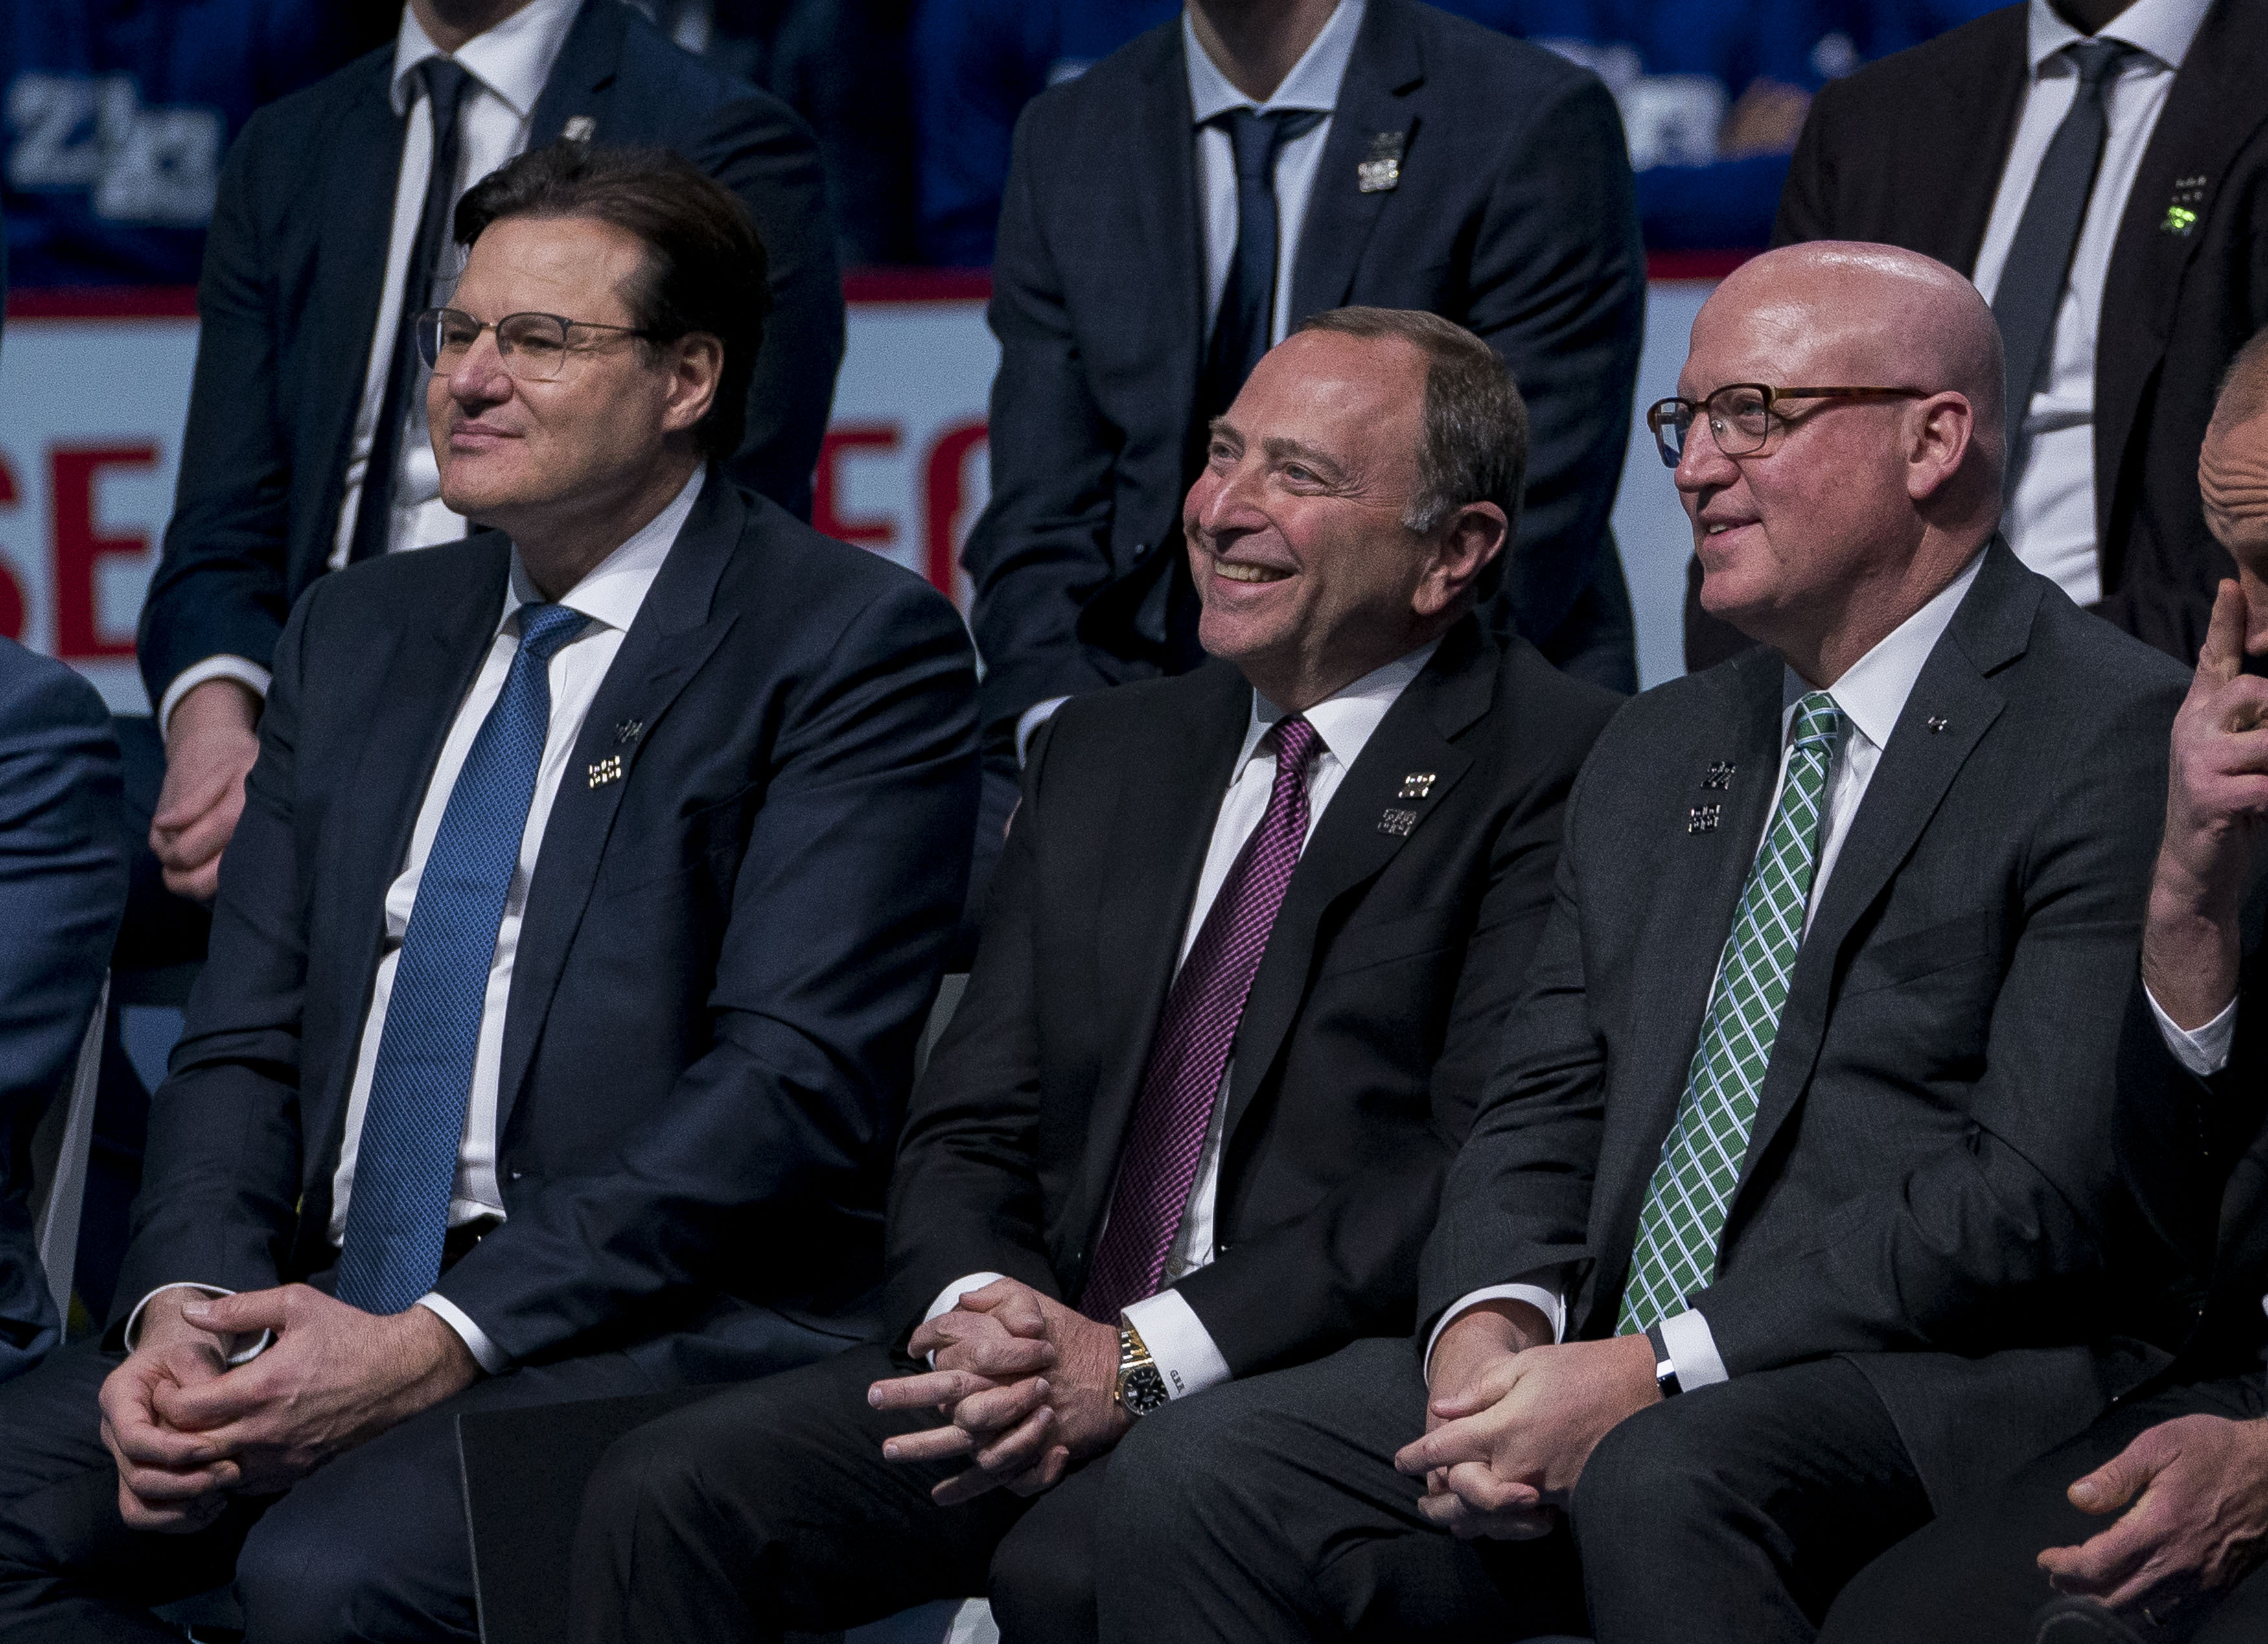 Feb 12, 2020; Vancouver, British Columbia, CAN; Gary Bettman commissioner of the National Hockey League with a smile during the Sedin's retirement ceremony prior to a game between the Vancouver Canucks and Chicago Blackhawks.